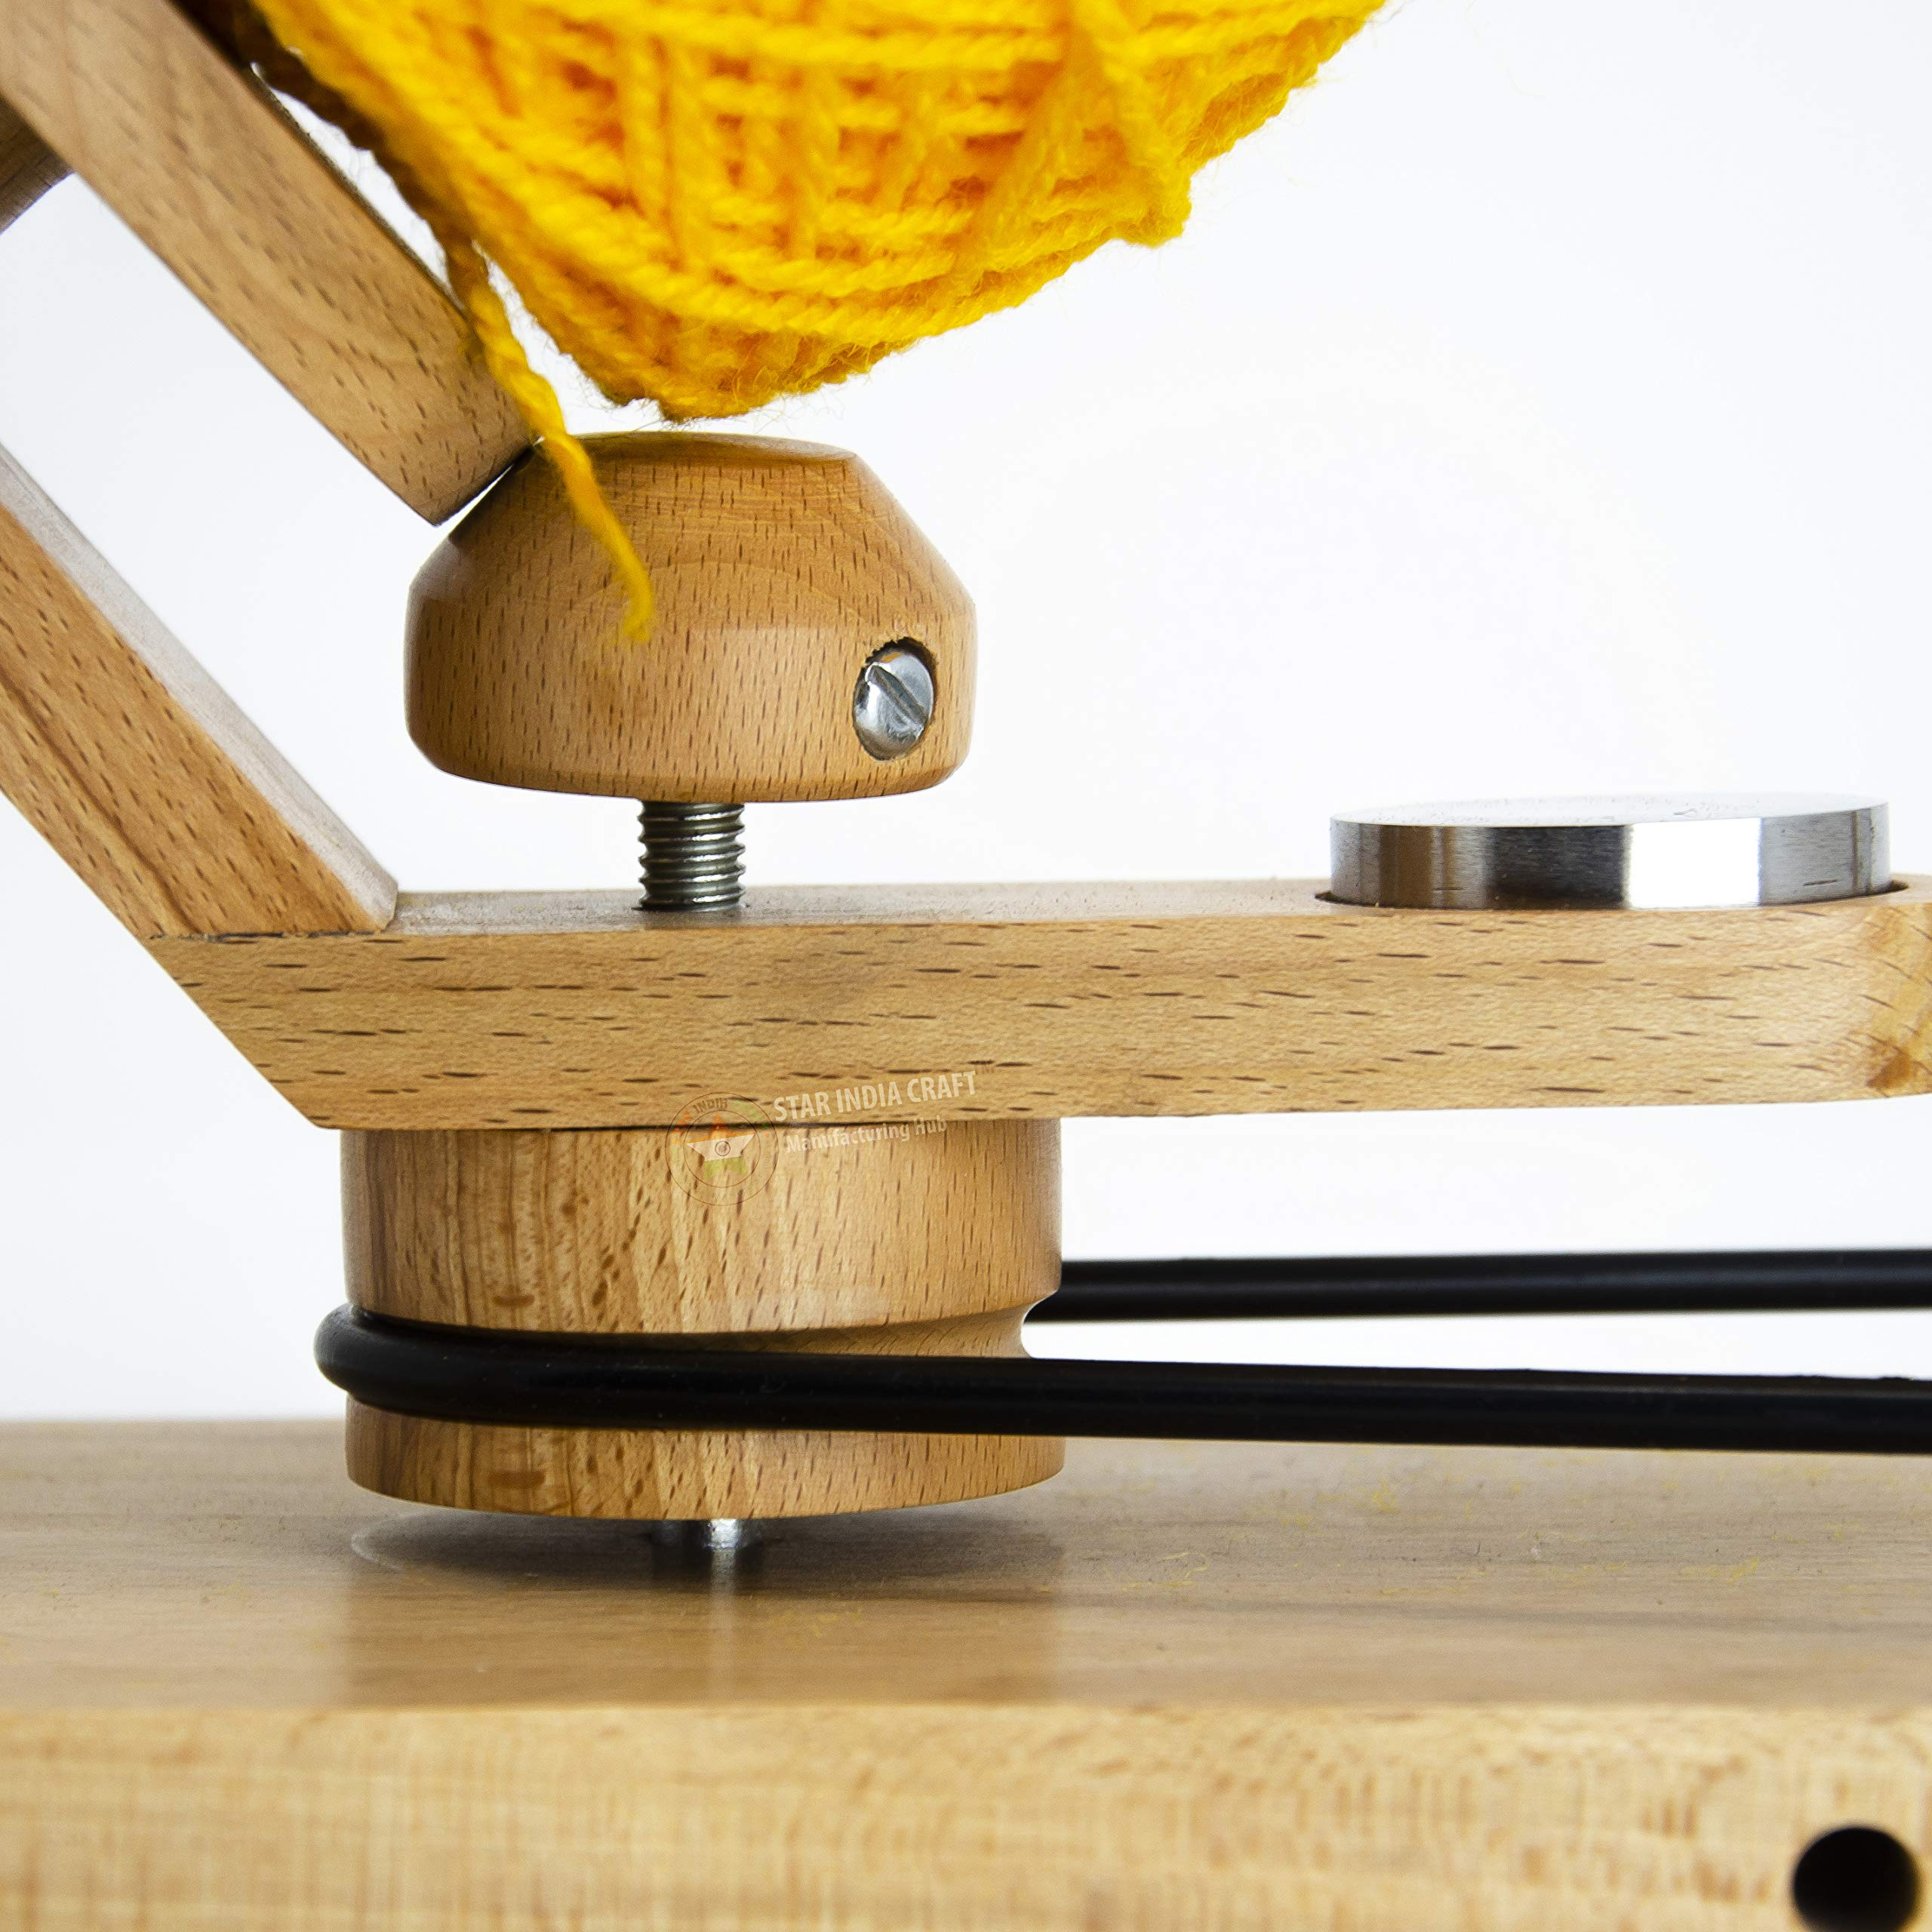 STAR INDIA CRAFT Handmade Center Pull Yarn Ball Winder - Natural Yarn Winder | Perfect DIY Knitter's Gifts for Knitting and Crocheting | Handcrafted Ball Winder (Yarn Winder, Standard) by STAR INDIA CRAFT (Image #3)